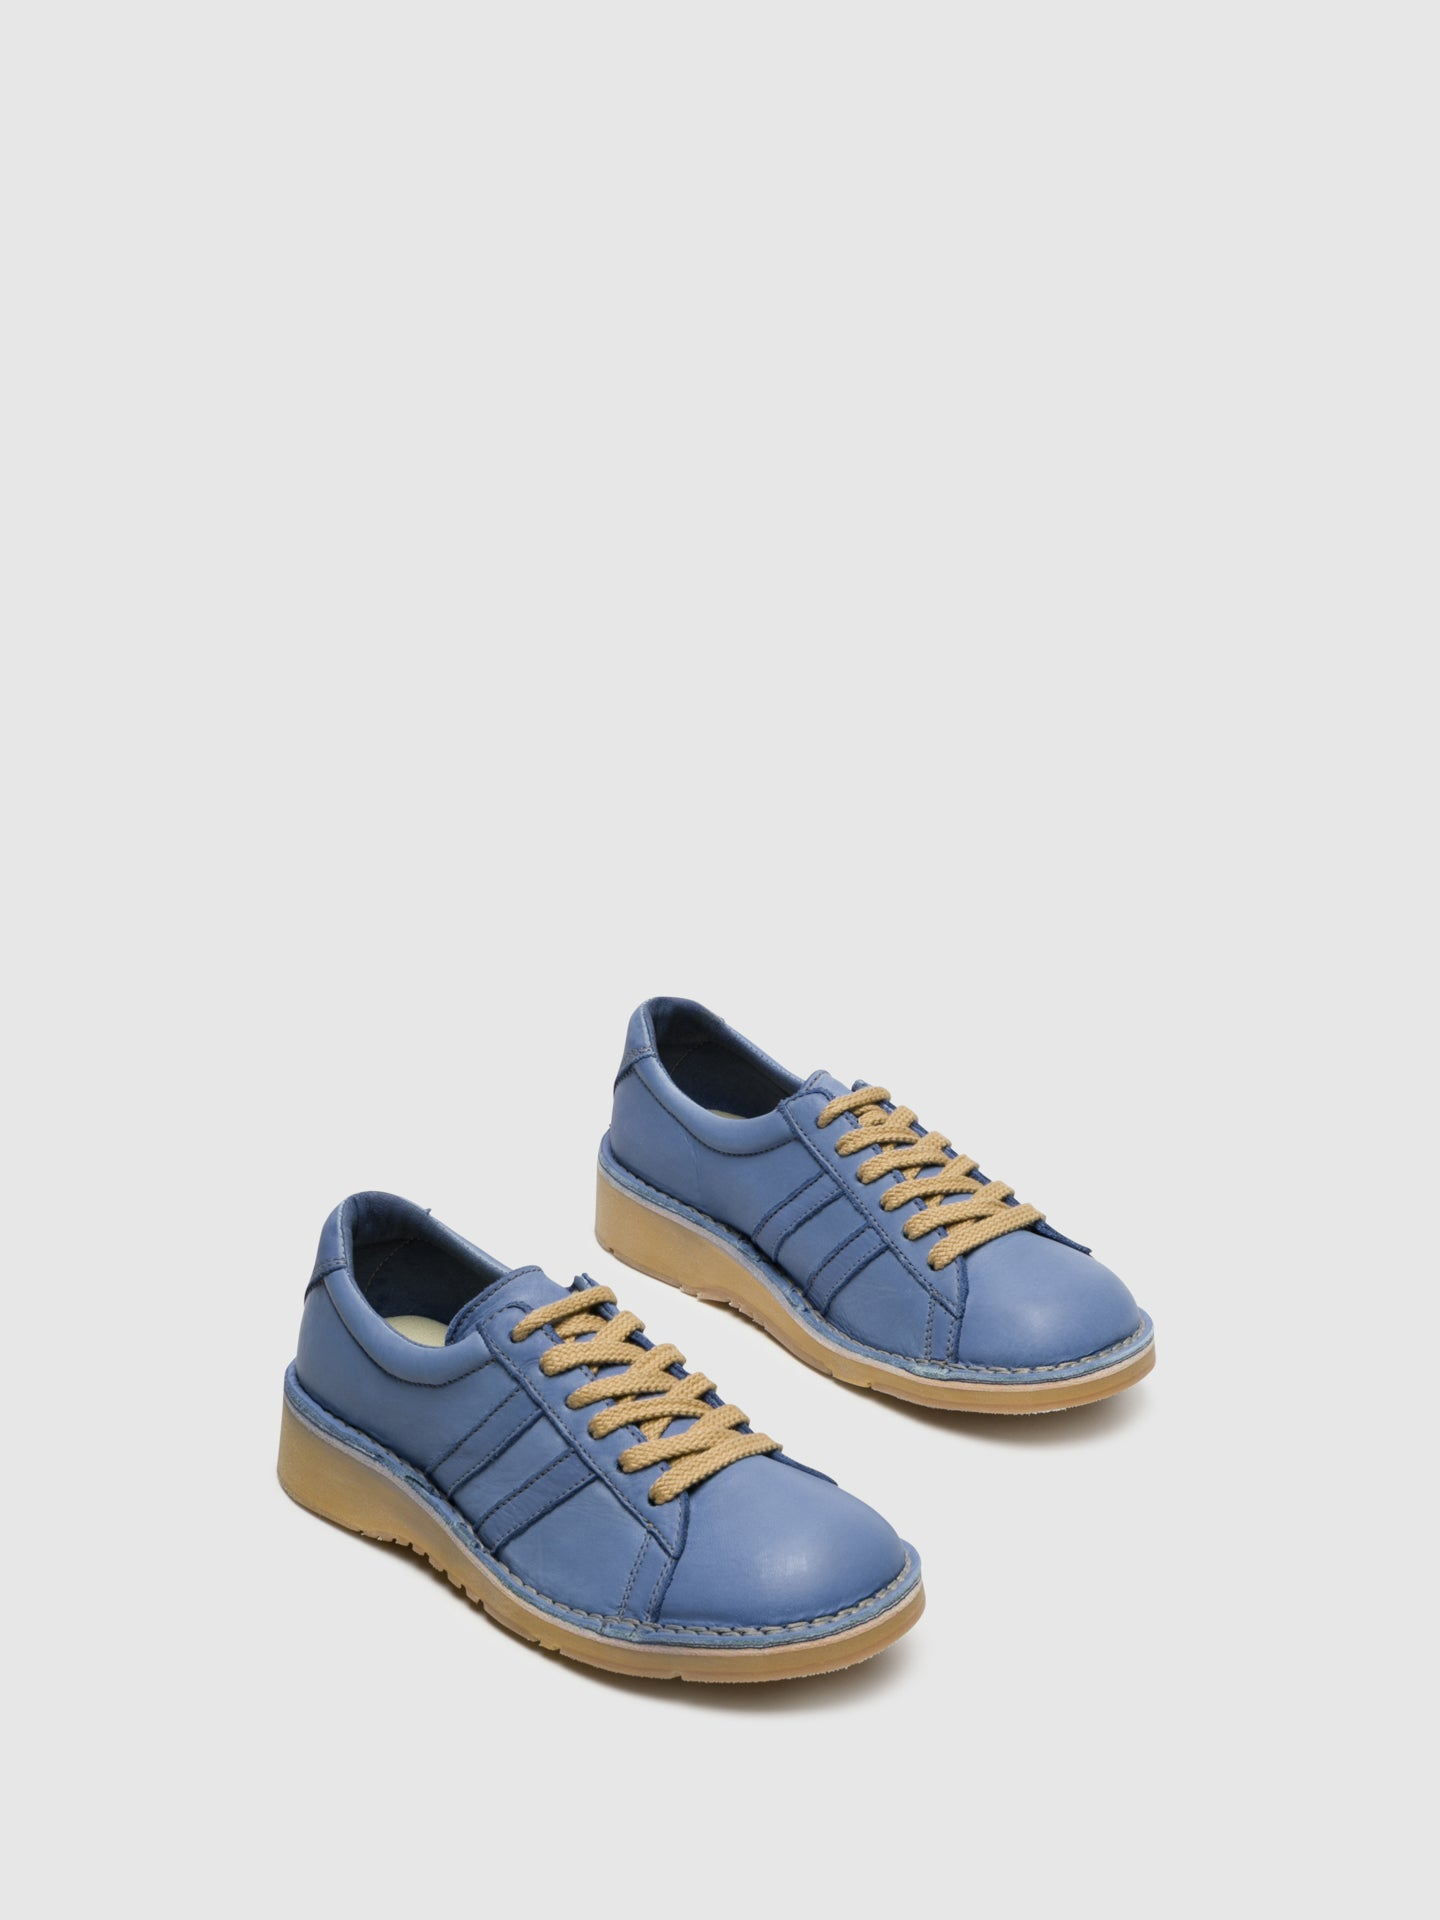 Fly London Blue Lace-up Trainers